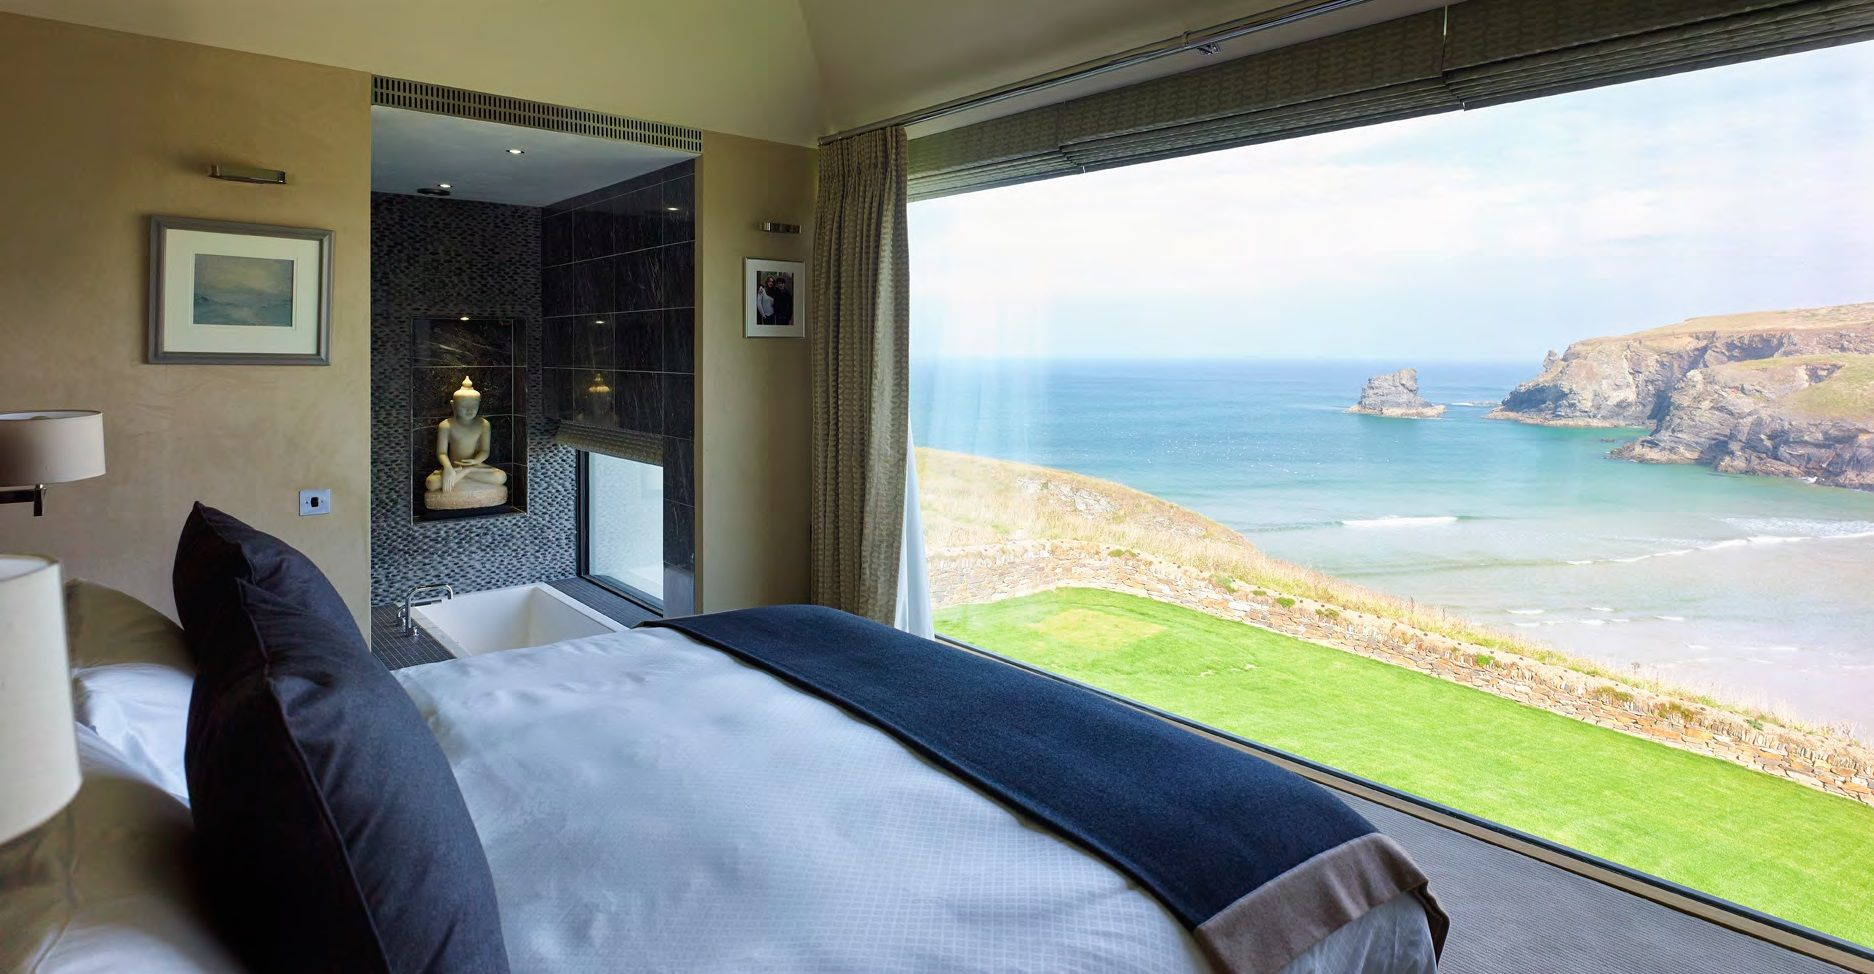 Large frameless picture frame structural glass window in a bedroom large frameless picture frame structural glass window in a bedroom with a stunning coastal view jeuxipadfo Image collections